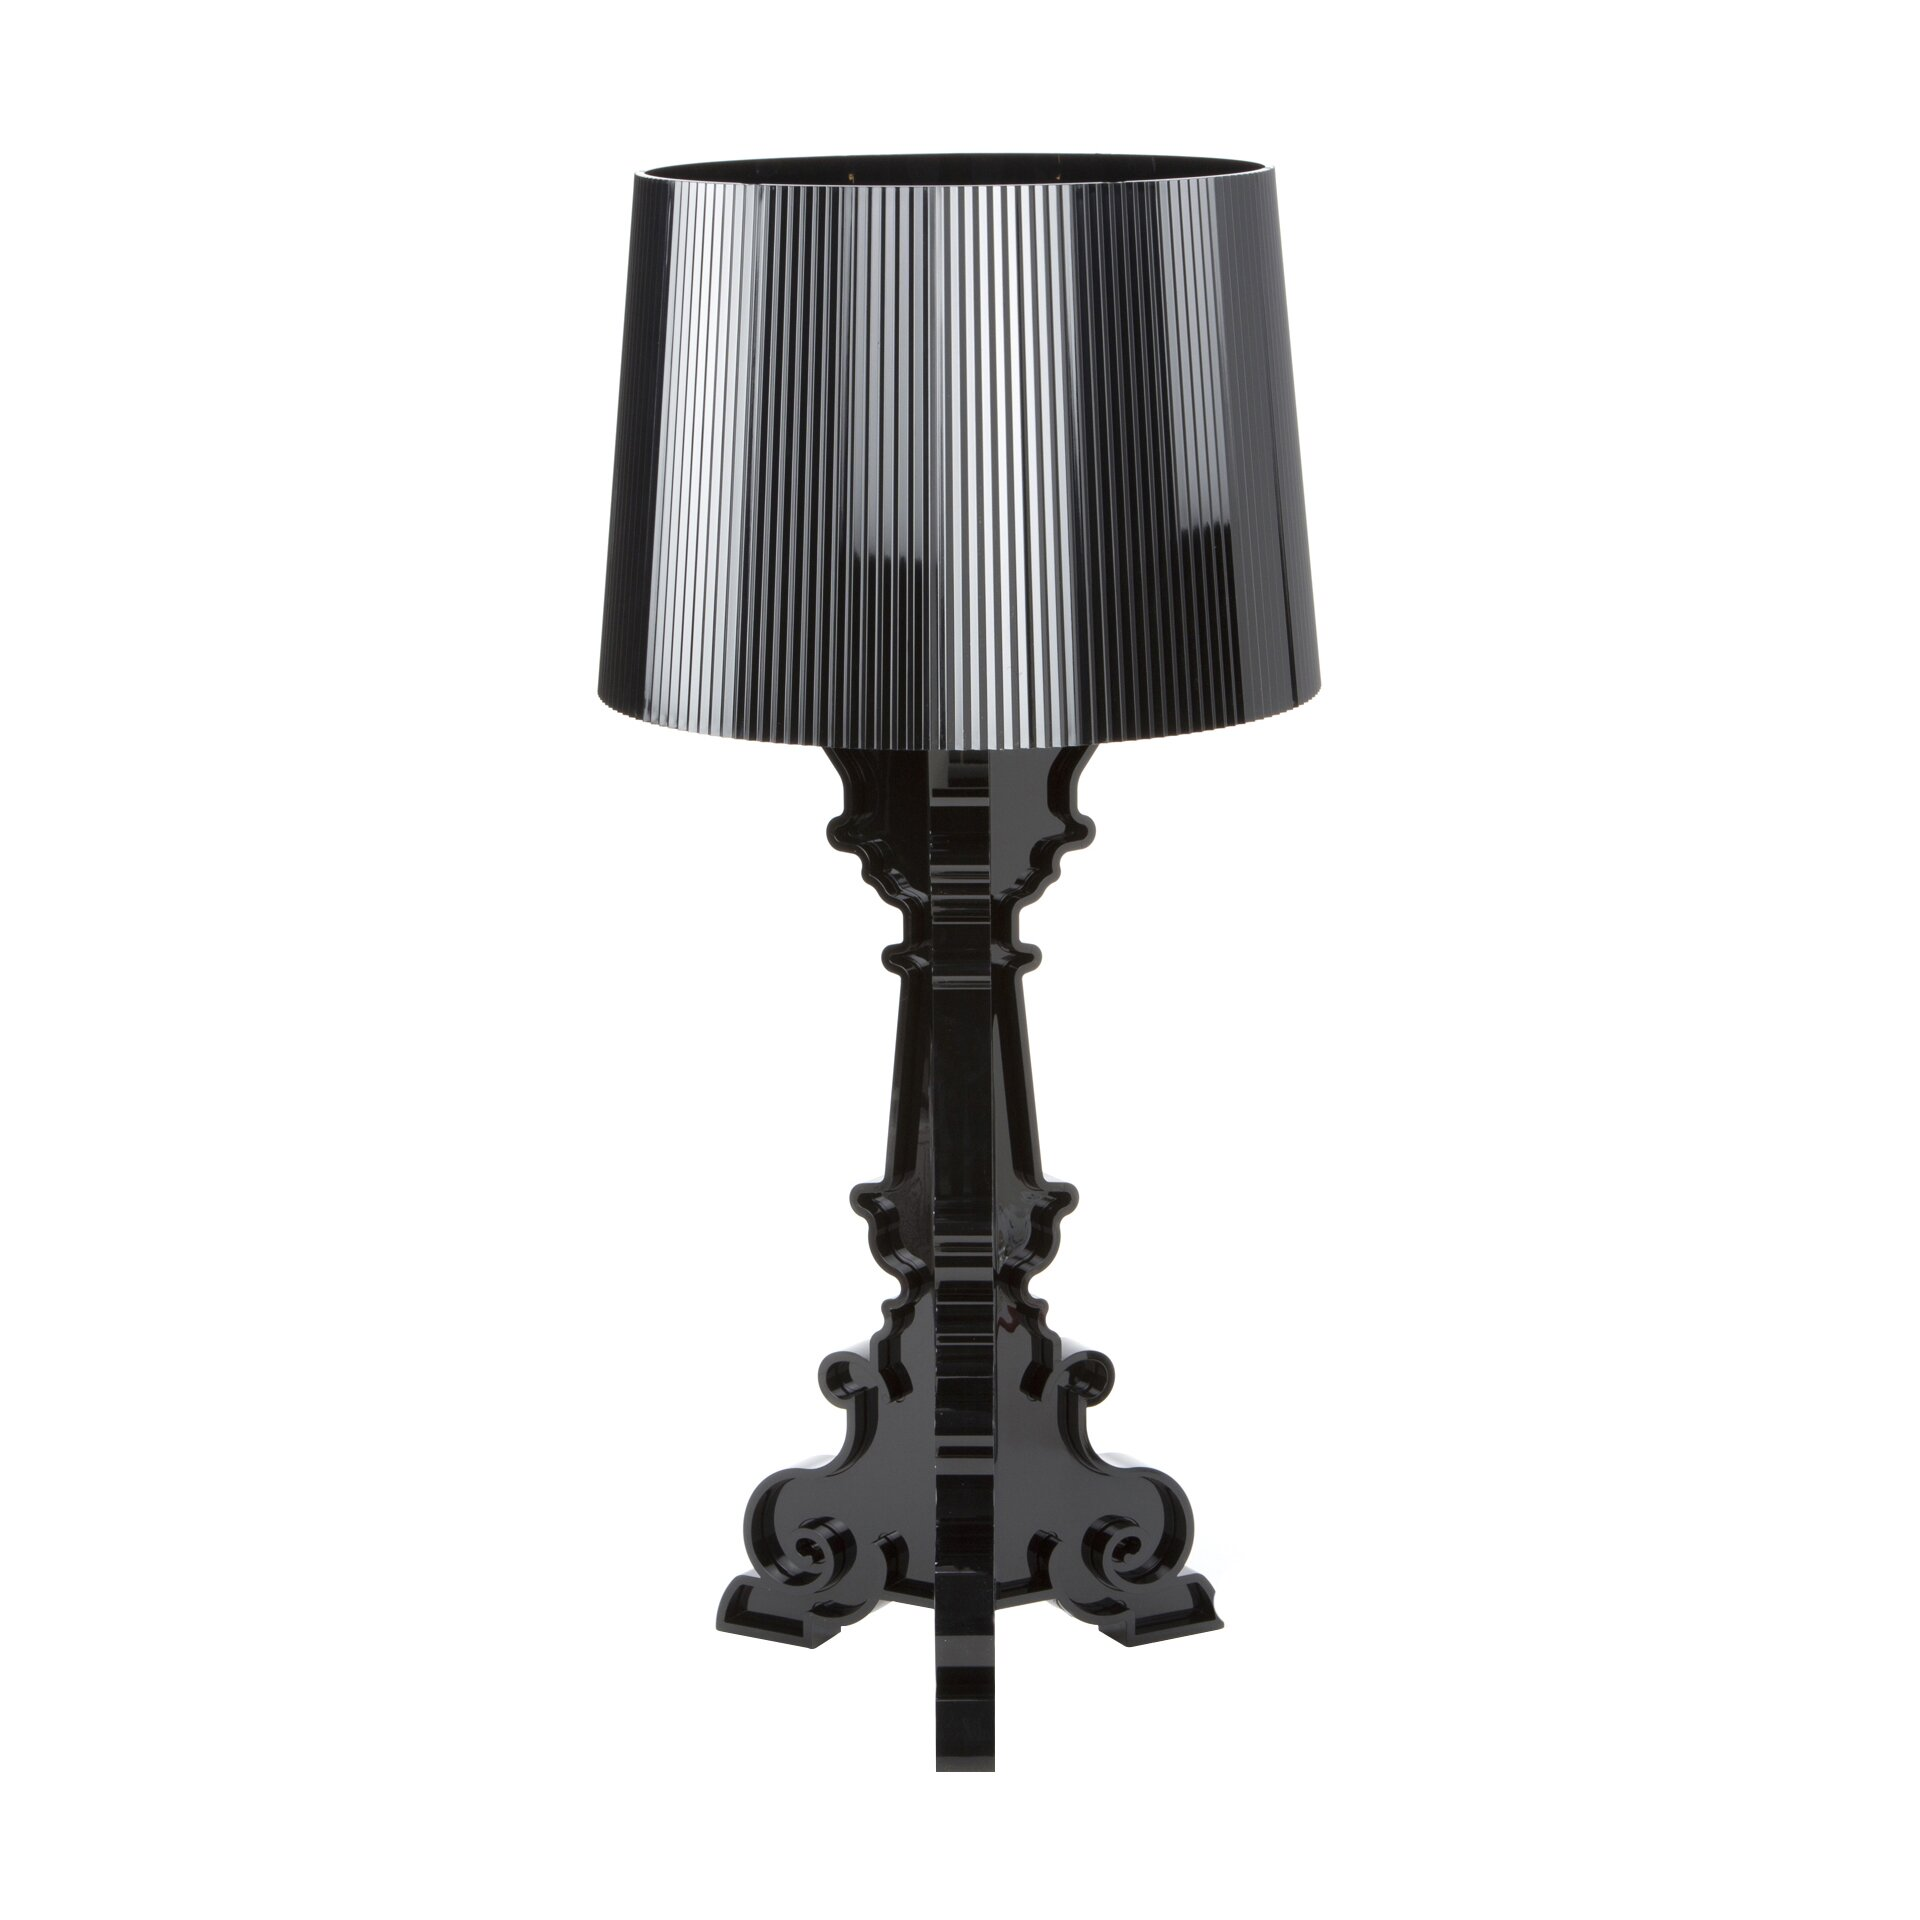 Kartell Bourgie 27 Quot H Table Lamp With Empire Shade Allmodern